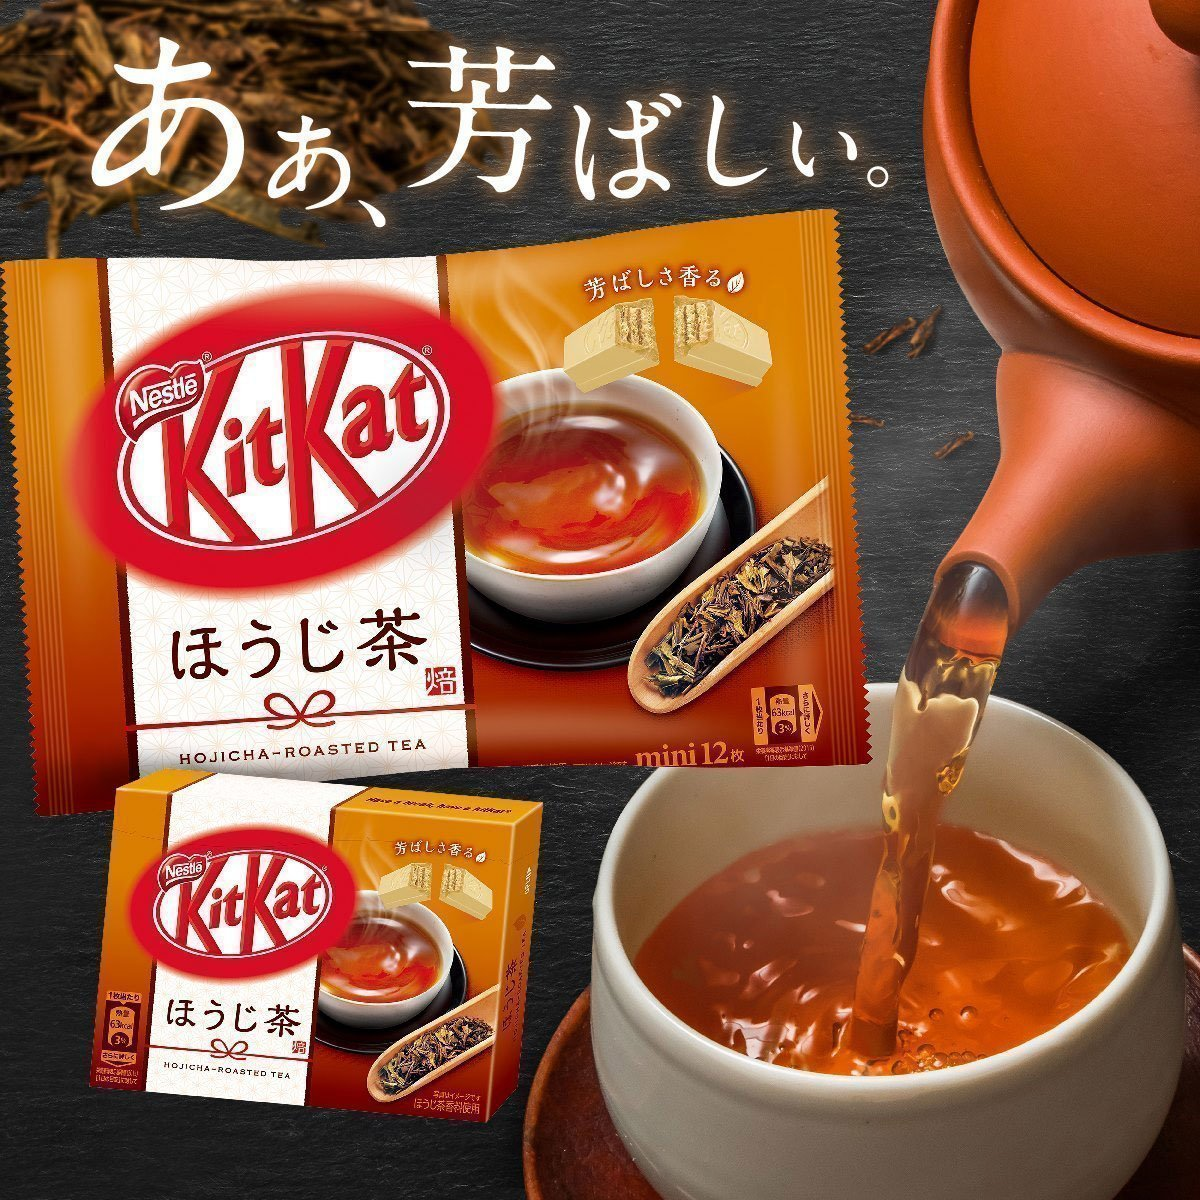 Kit Kat Japanese Hojicha Roasted Tea 12 Pieces Available Only in Japan